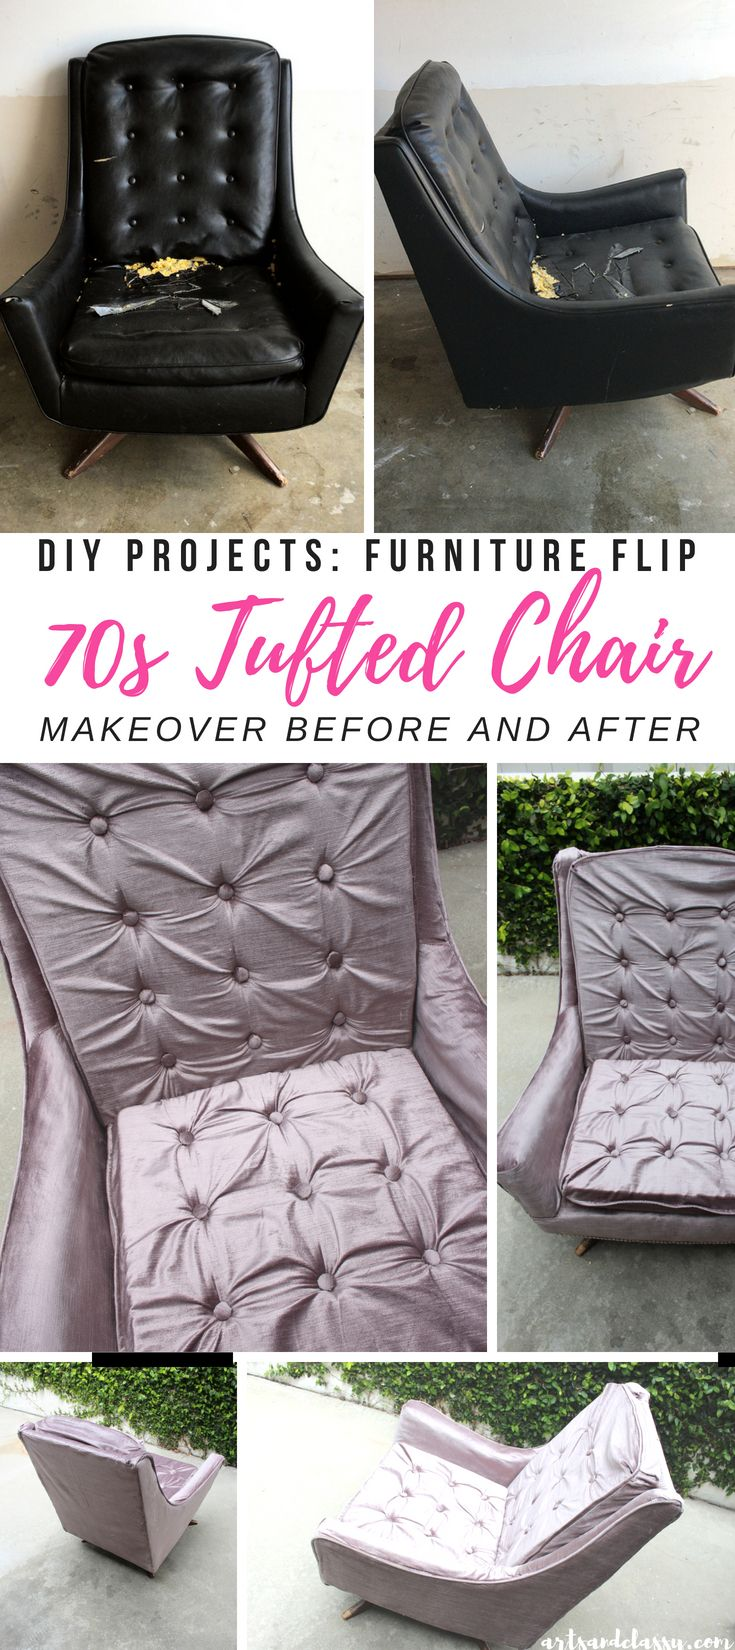 1970's Vintage Leather Rocker Gets a Feminine Modern Makeover. I am loving this ...